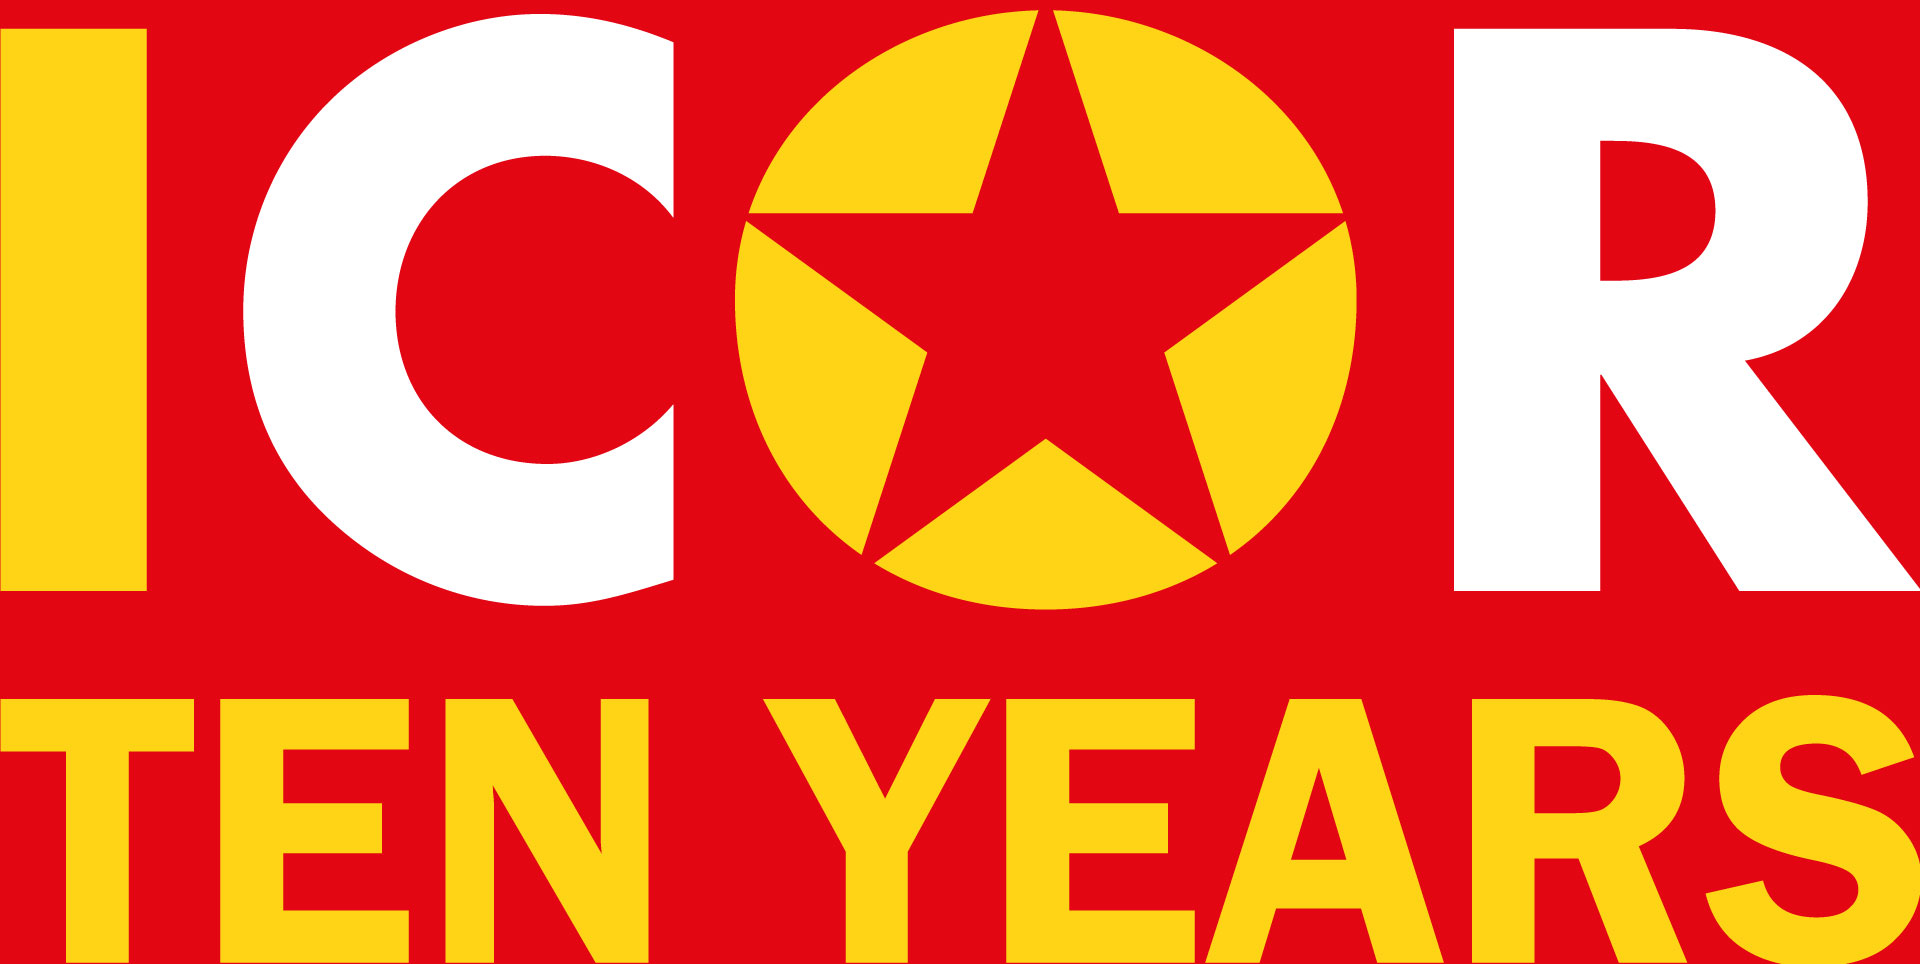 The existence of the ICOR is a victory for the rebirth of a strong, unified, organized communist movement